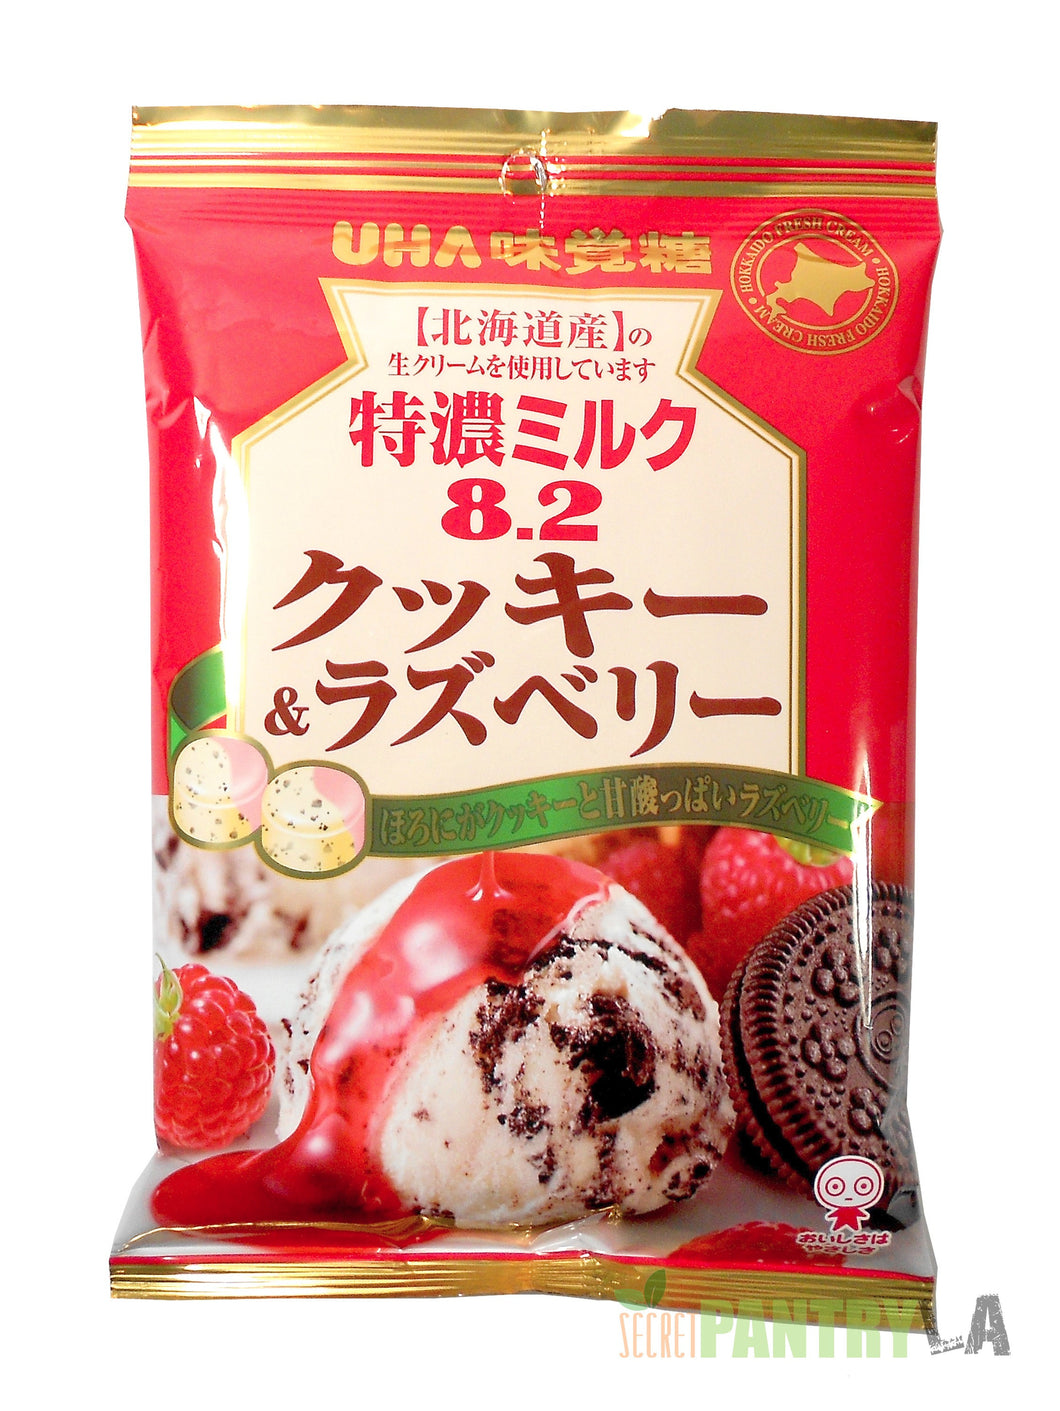 UHA 8.2 High Concentrated Tokuno Milk Cookies & Raspberry Candy 2.85 OZ.